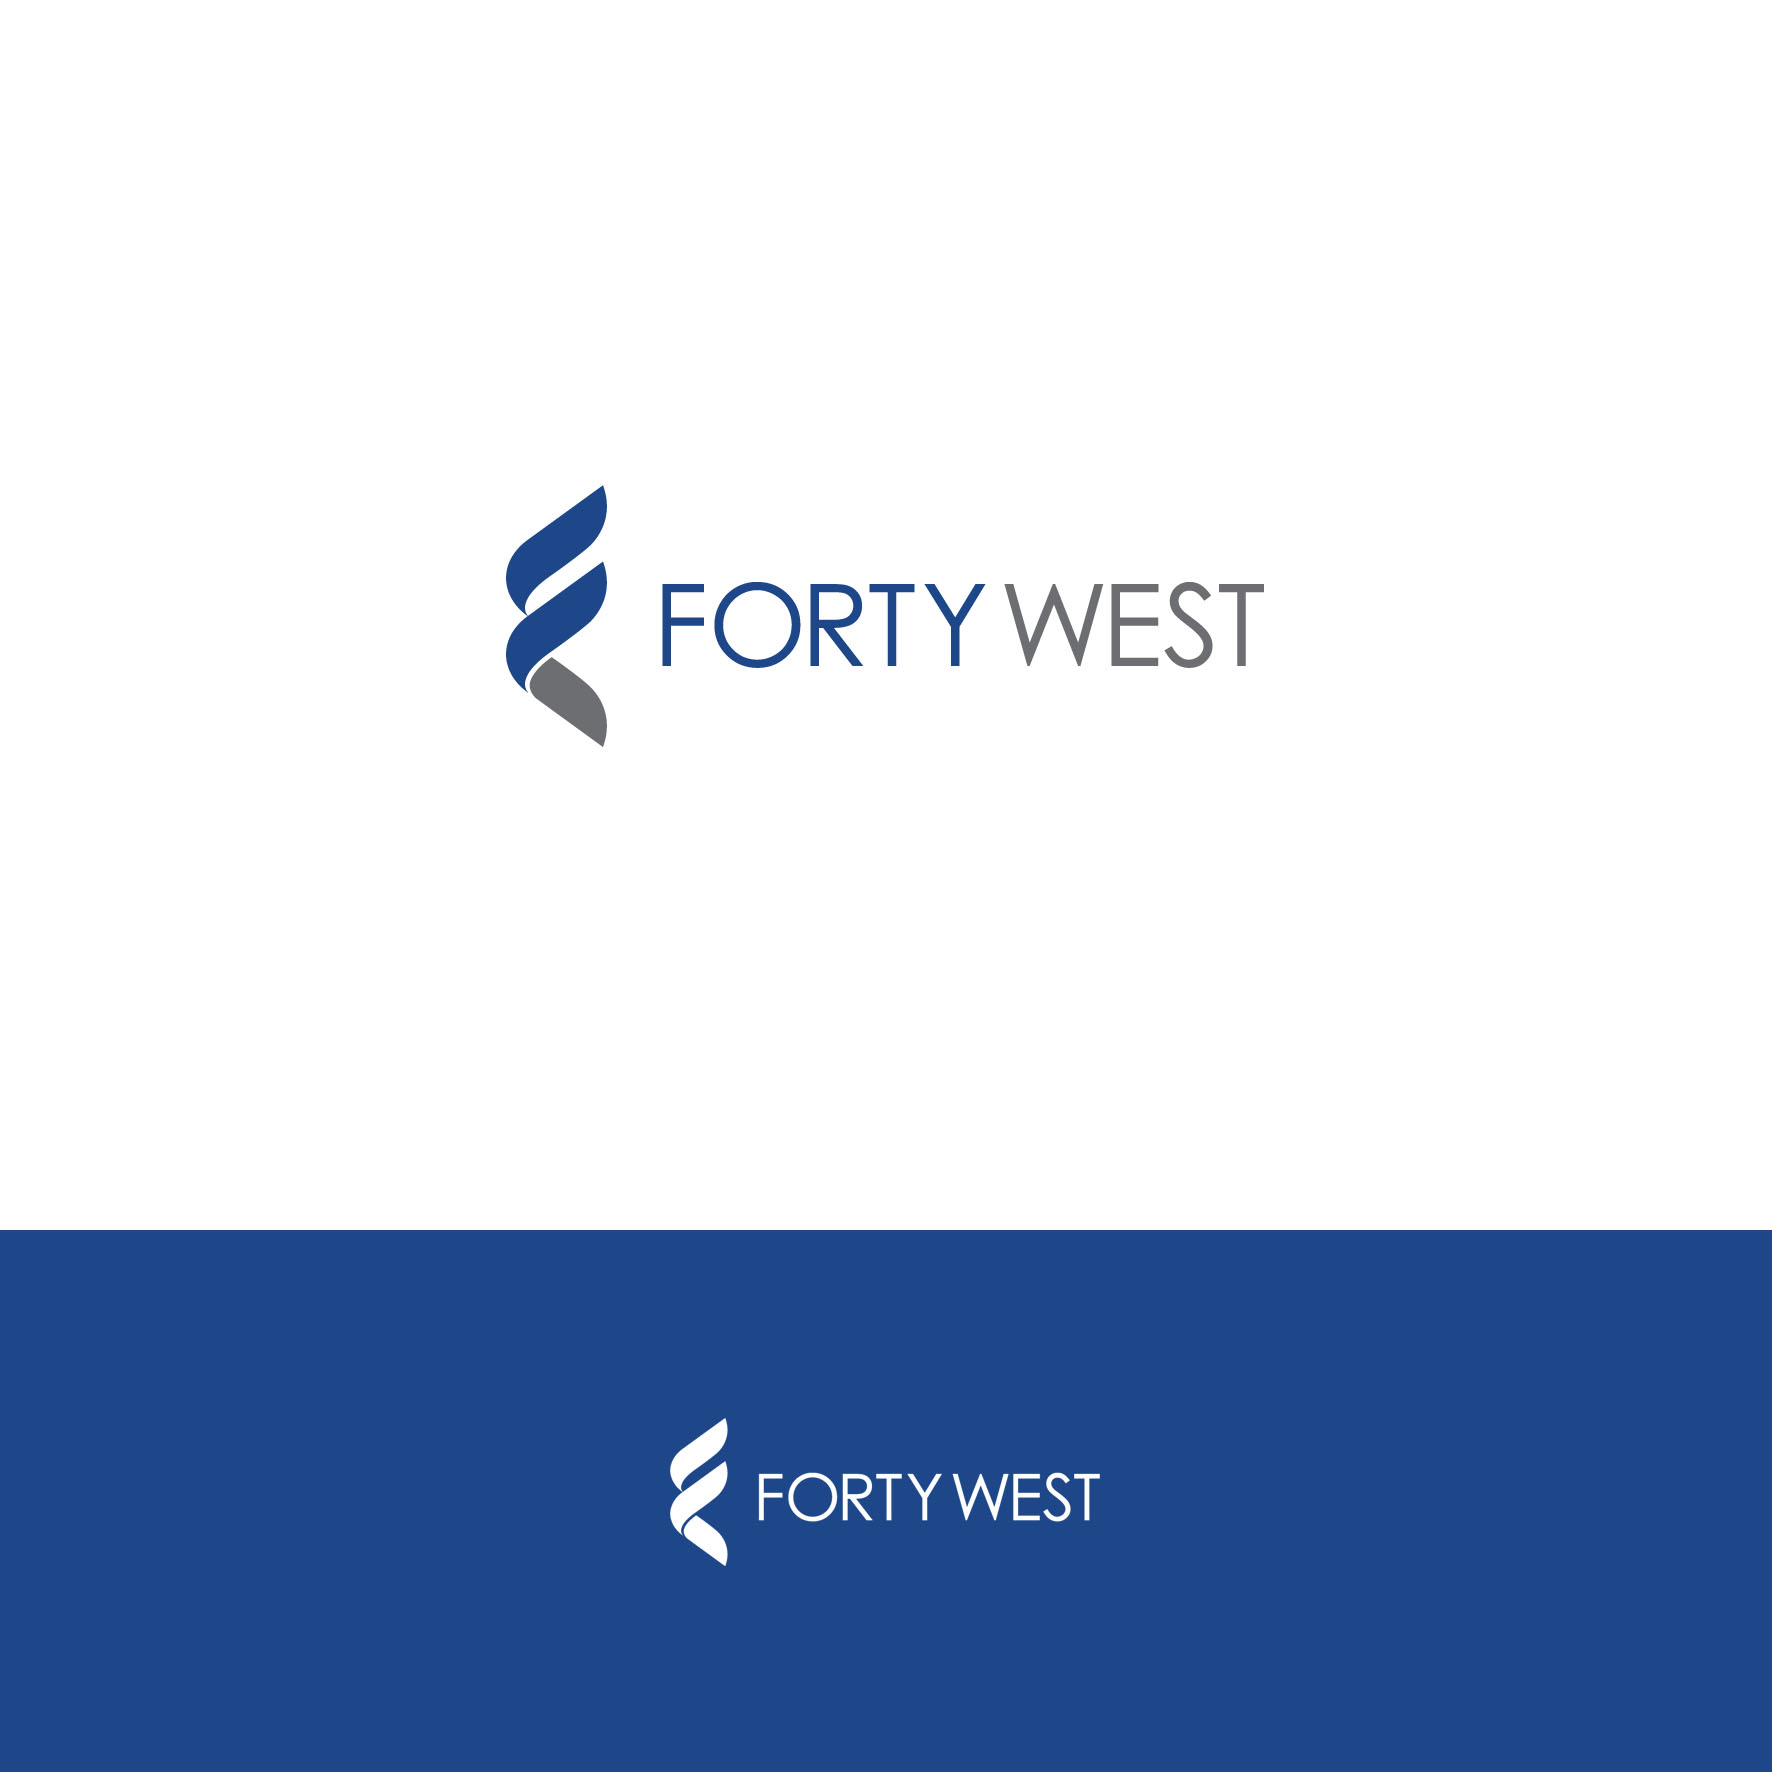 Logo Design by tanganpanas - Entry No. 48 in the Logo Design Contest Unique Logo Design Wanted for Forty West.